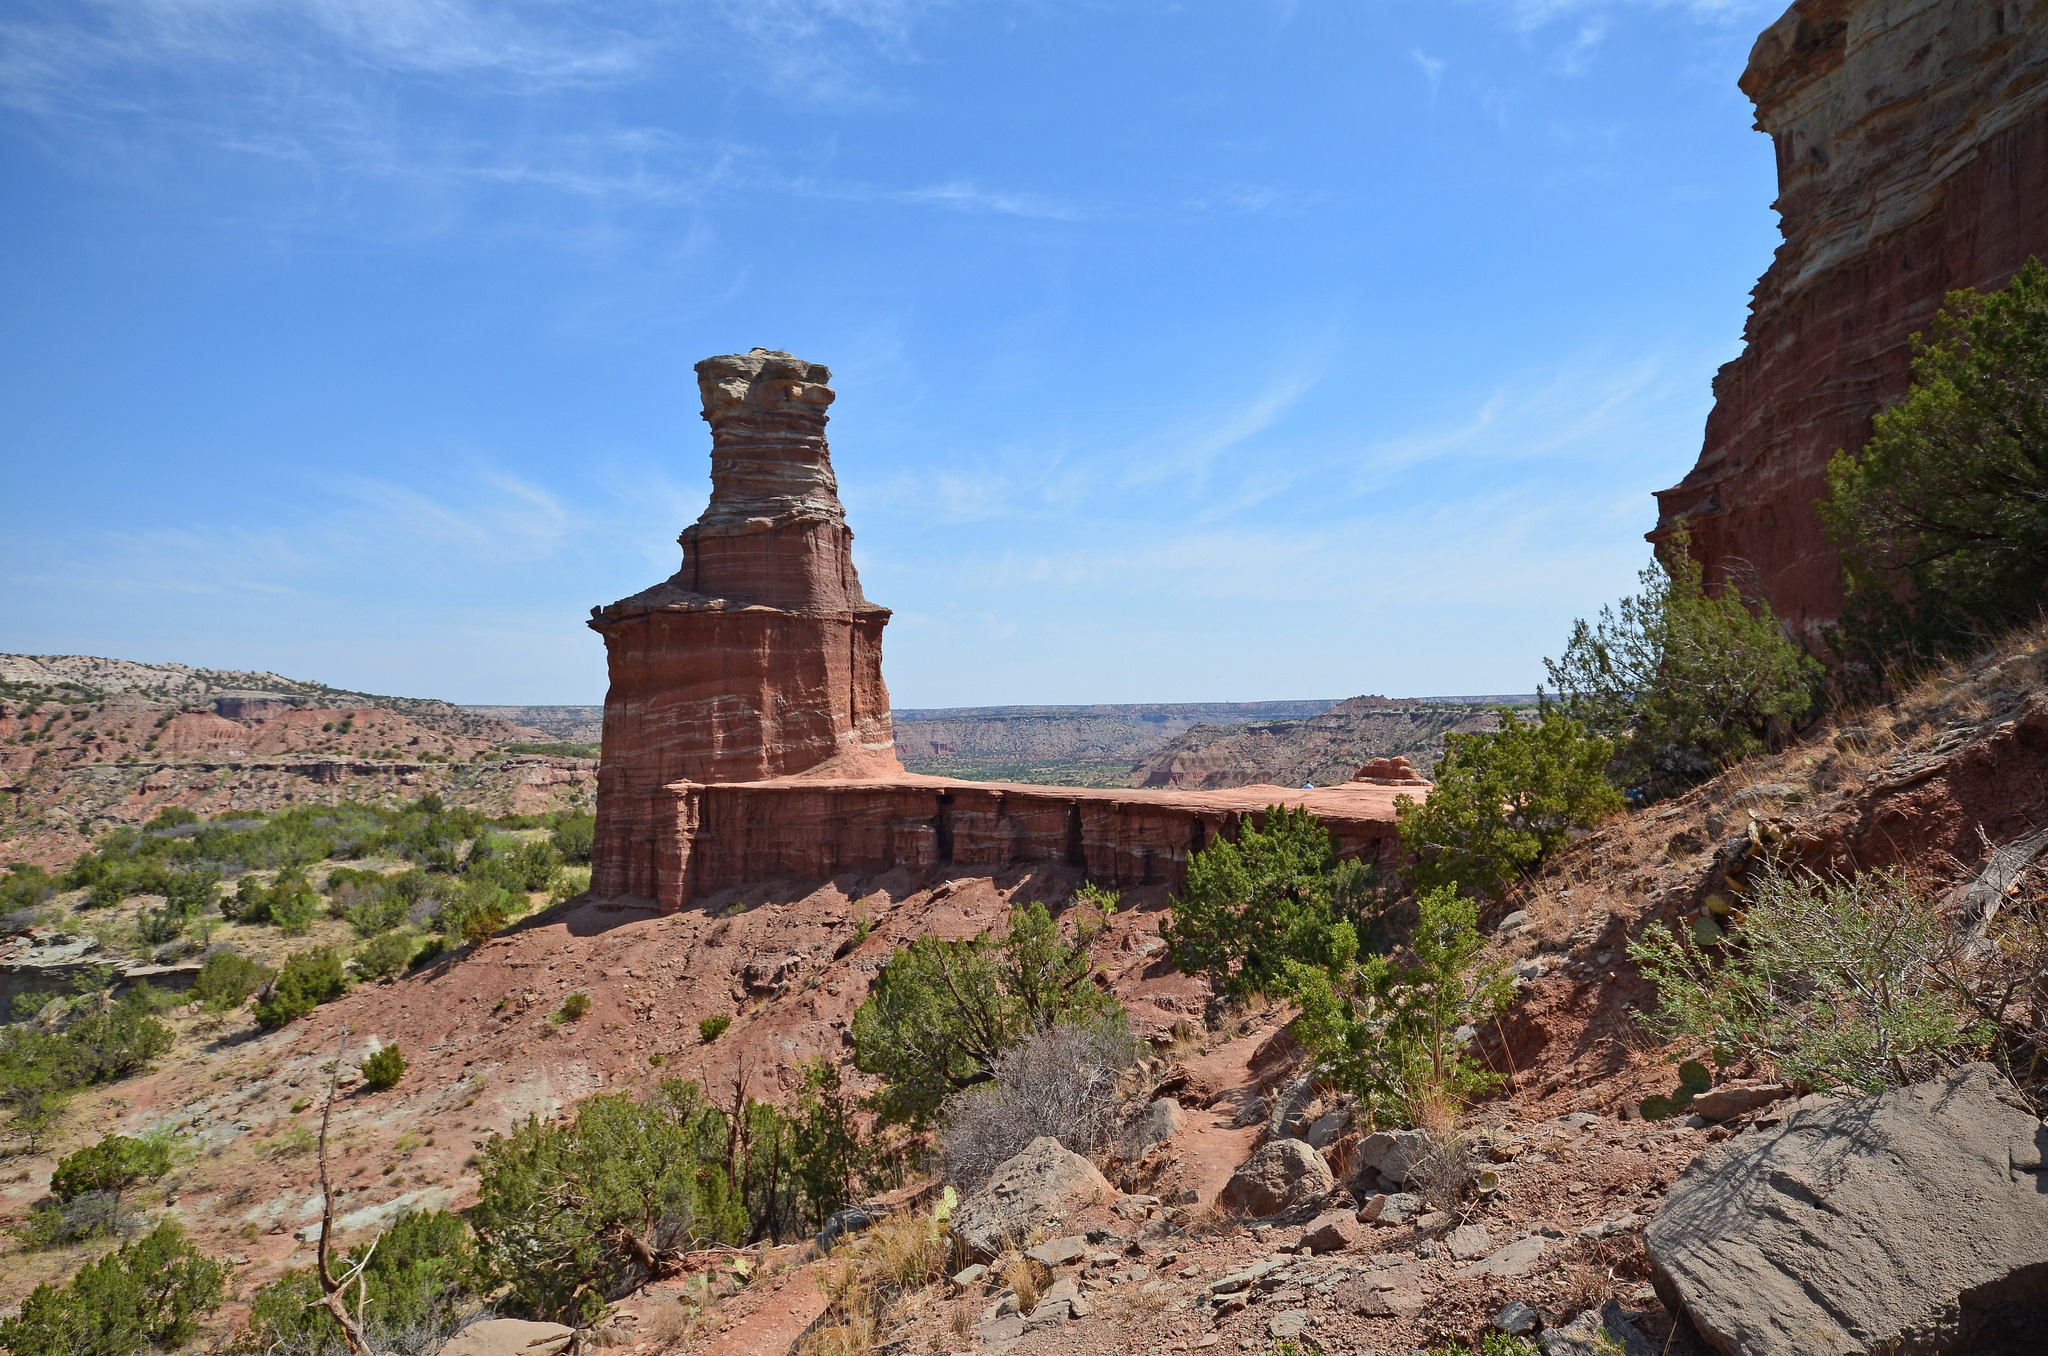 Hoodoos, like the Pillar of Palo Duro, pictured here, were carved out by the Red River millions of years ago. Photo credit Flickr user RichieBpics.